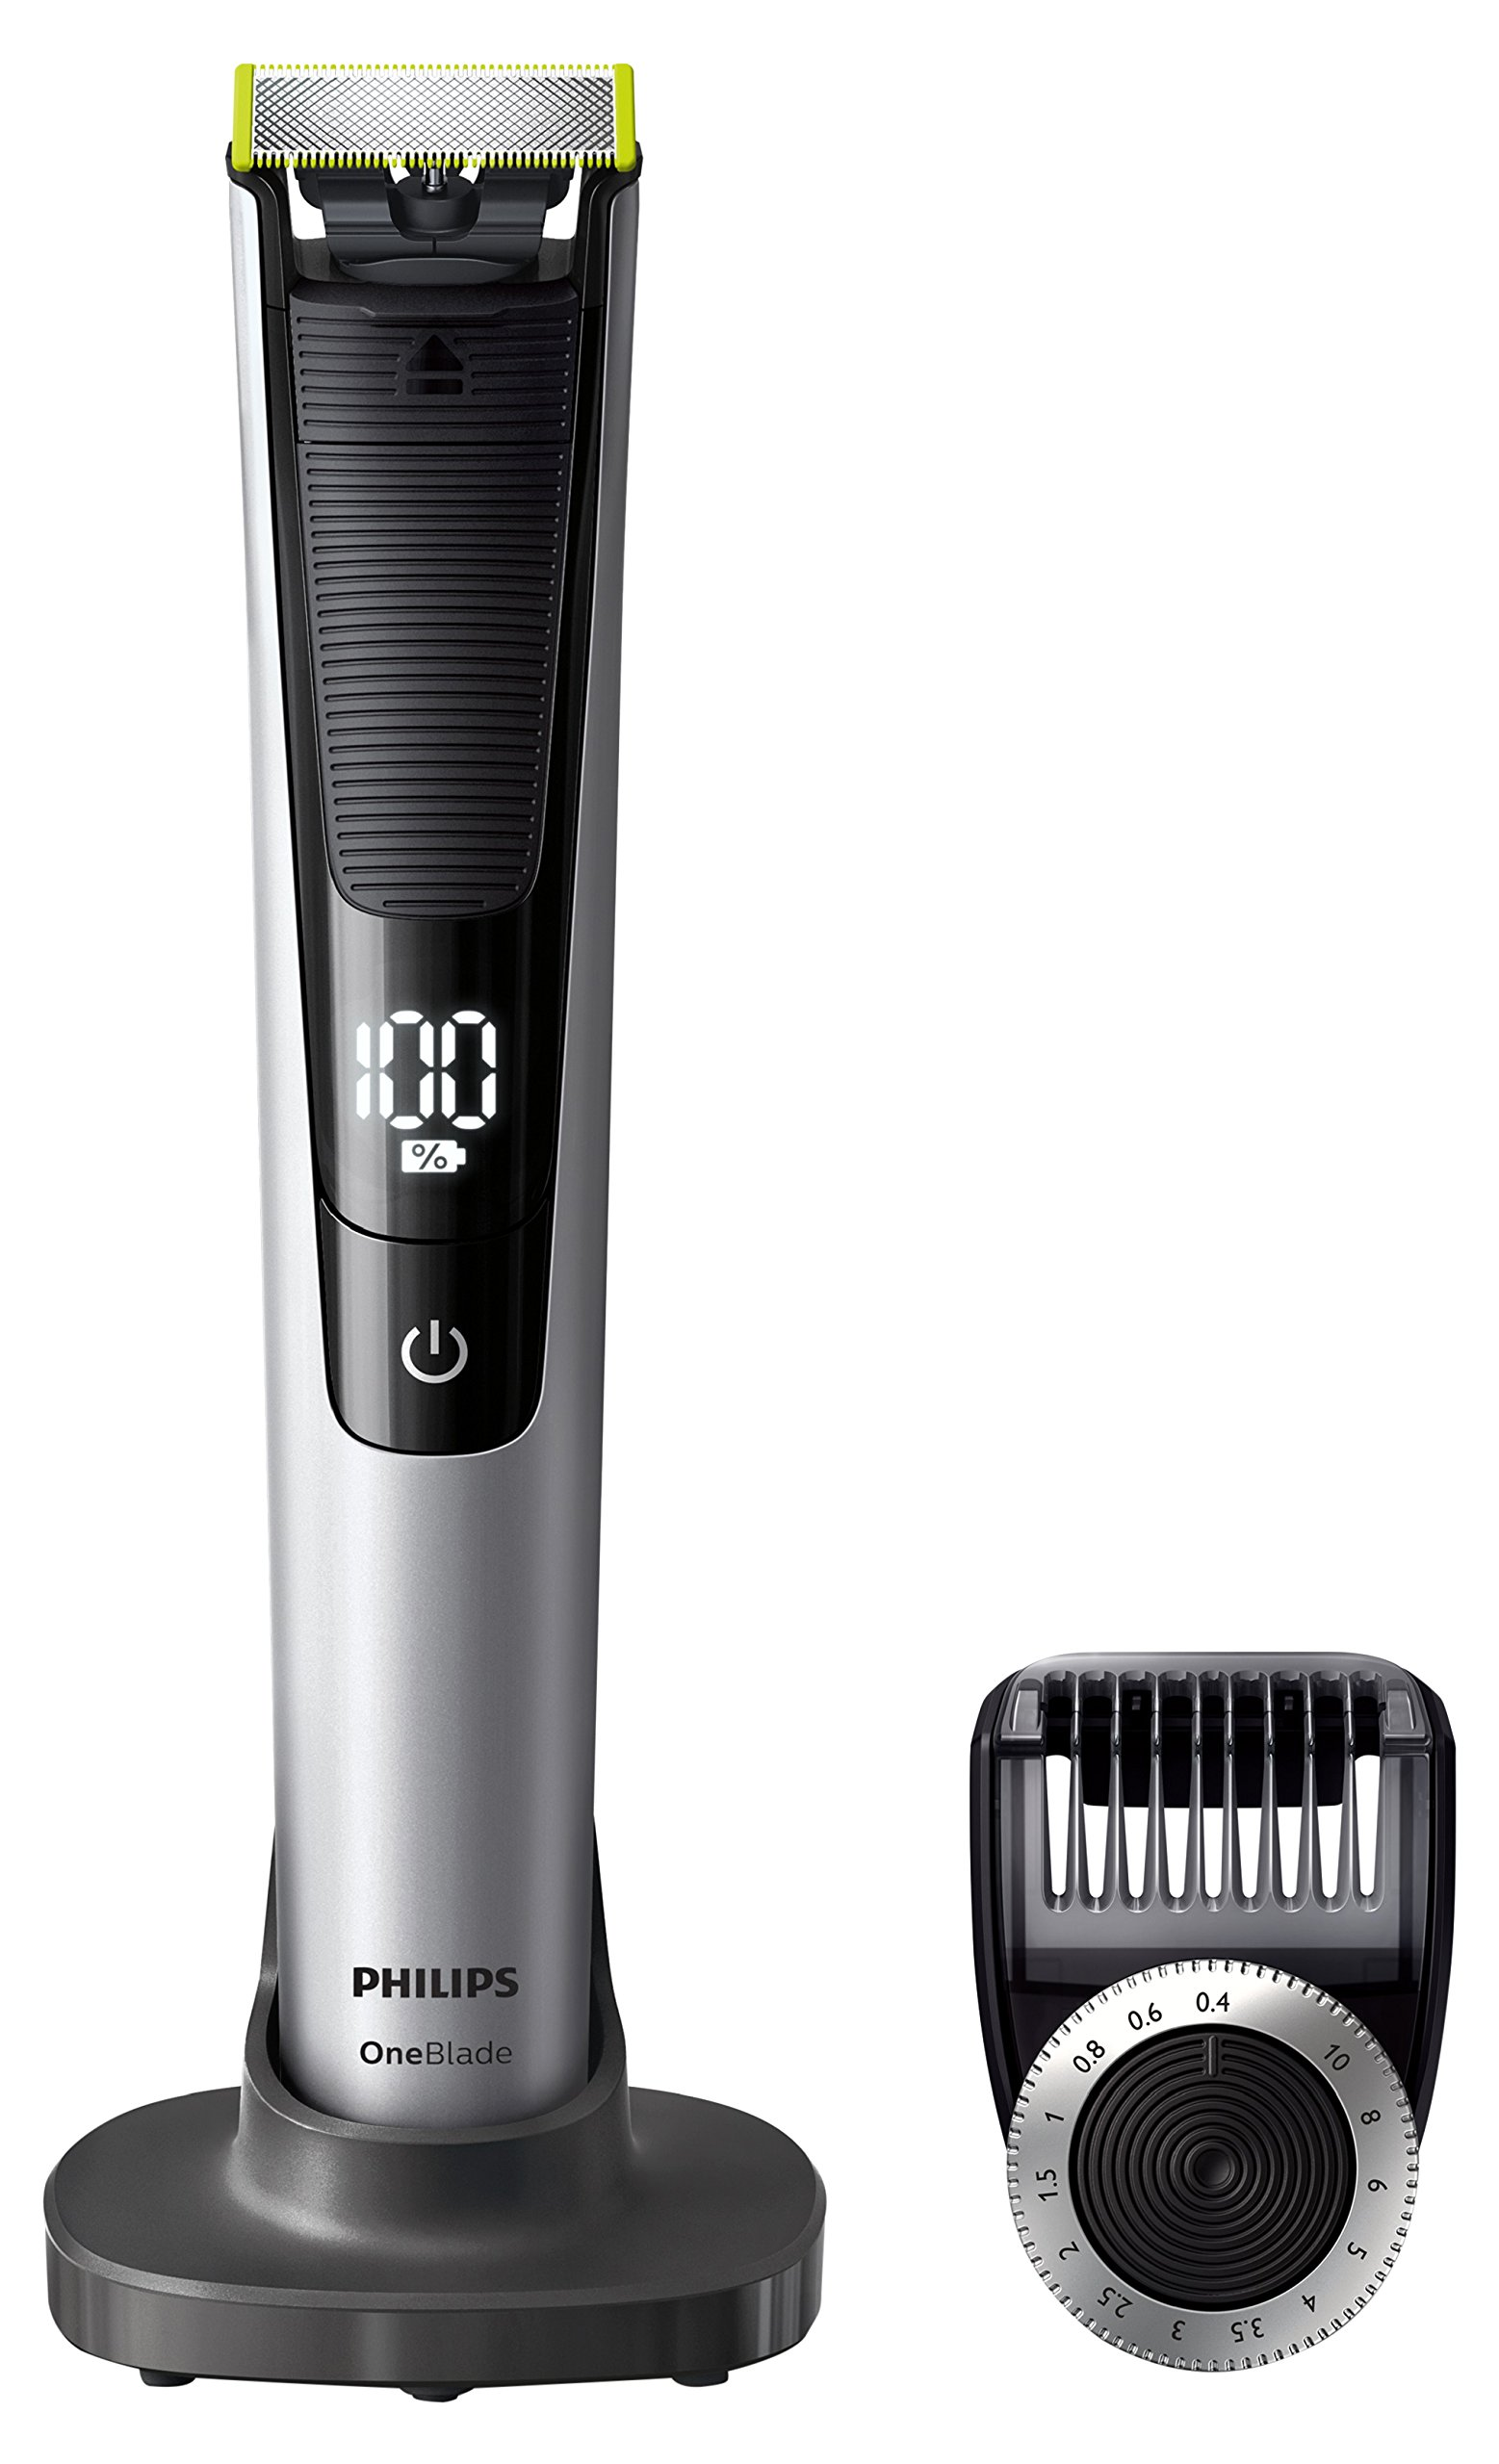 Philips OneBlade Pro Hybrid Trimmer & Shaver with 14-Length Comb (UK 2-Pin Bathroom Plug) - Frustration-Free-Packaging - QP6520/30 product image